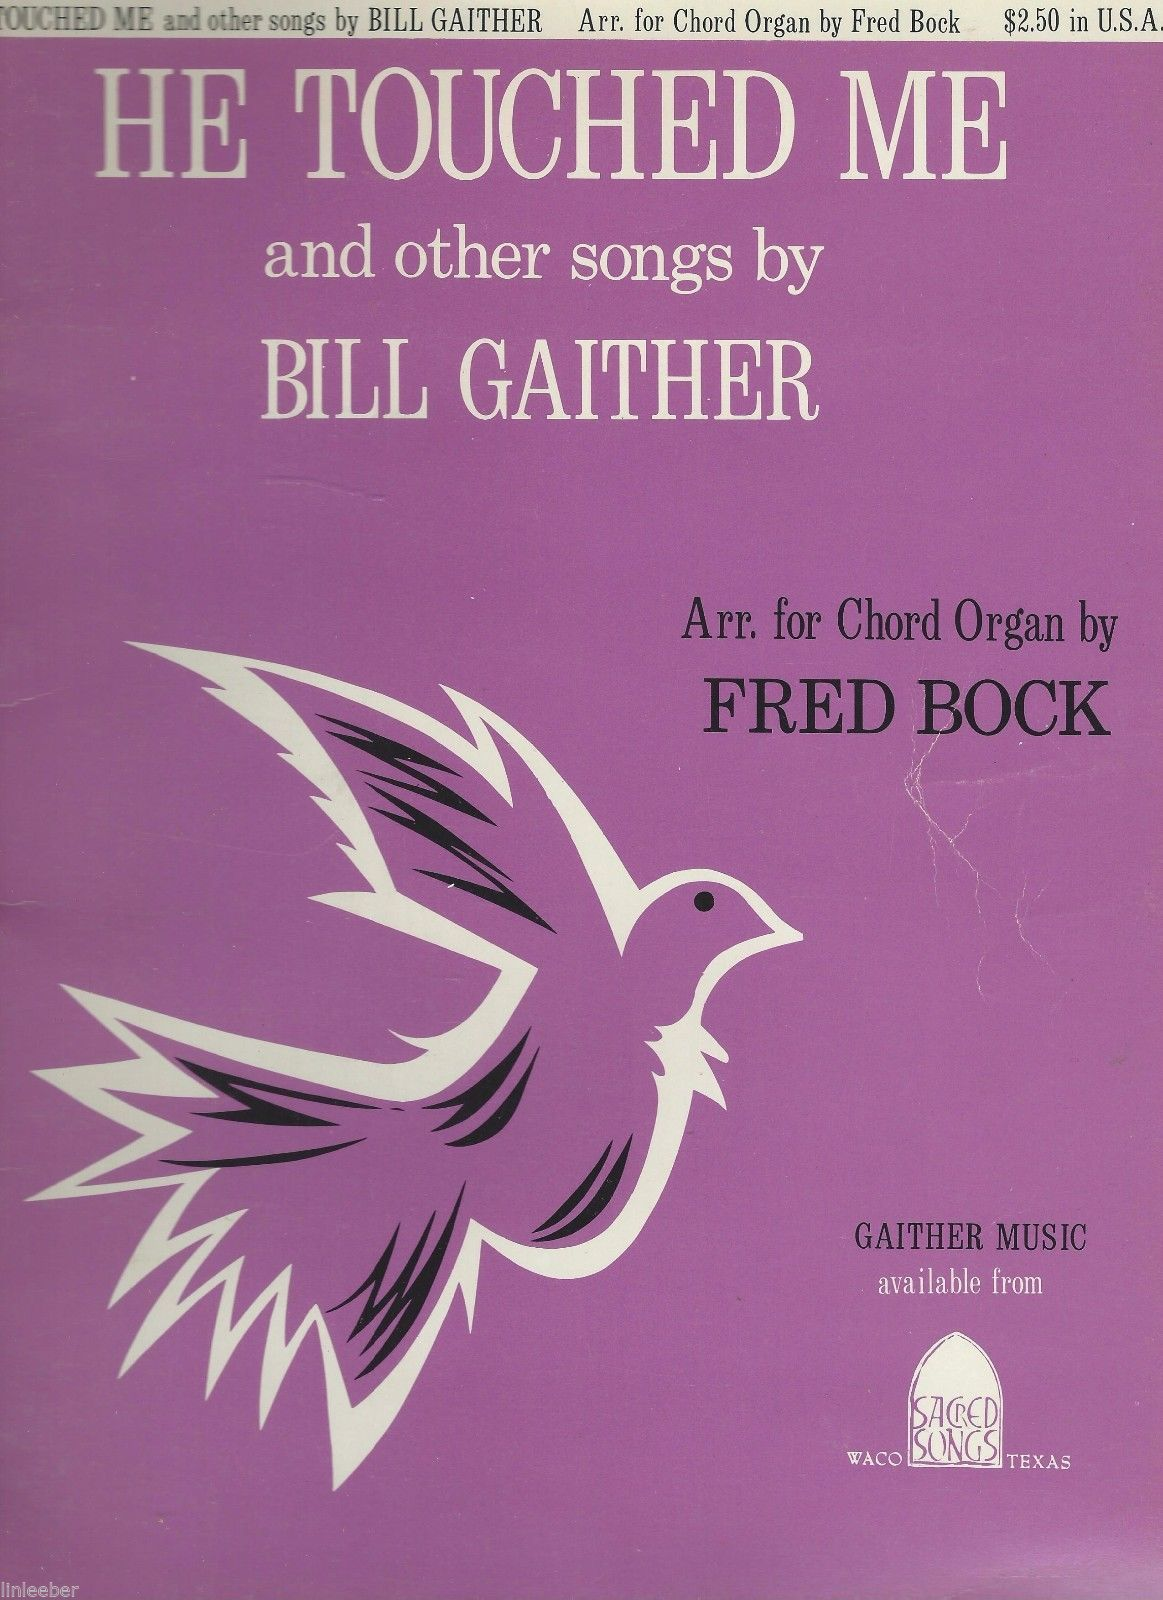 HE TOUCHED ME and other songs of Bill Gaither Arr. For Chord Organ by Fred Bock